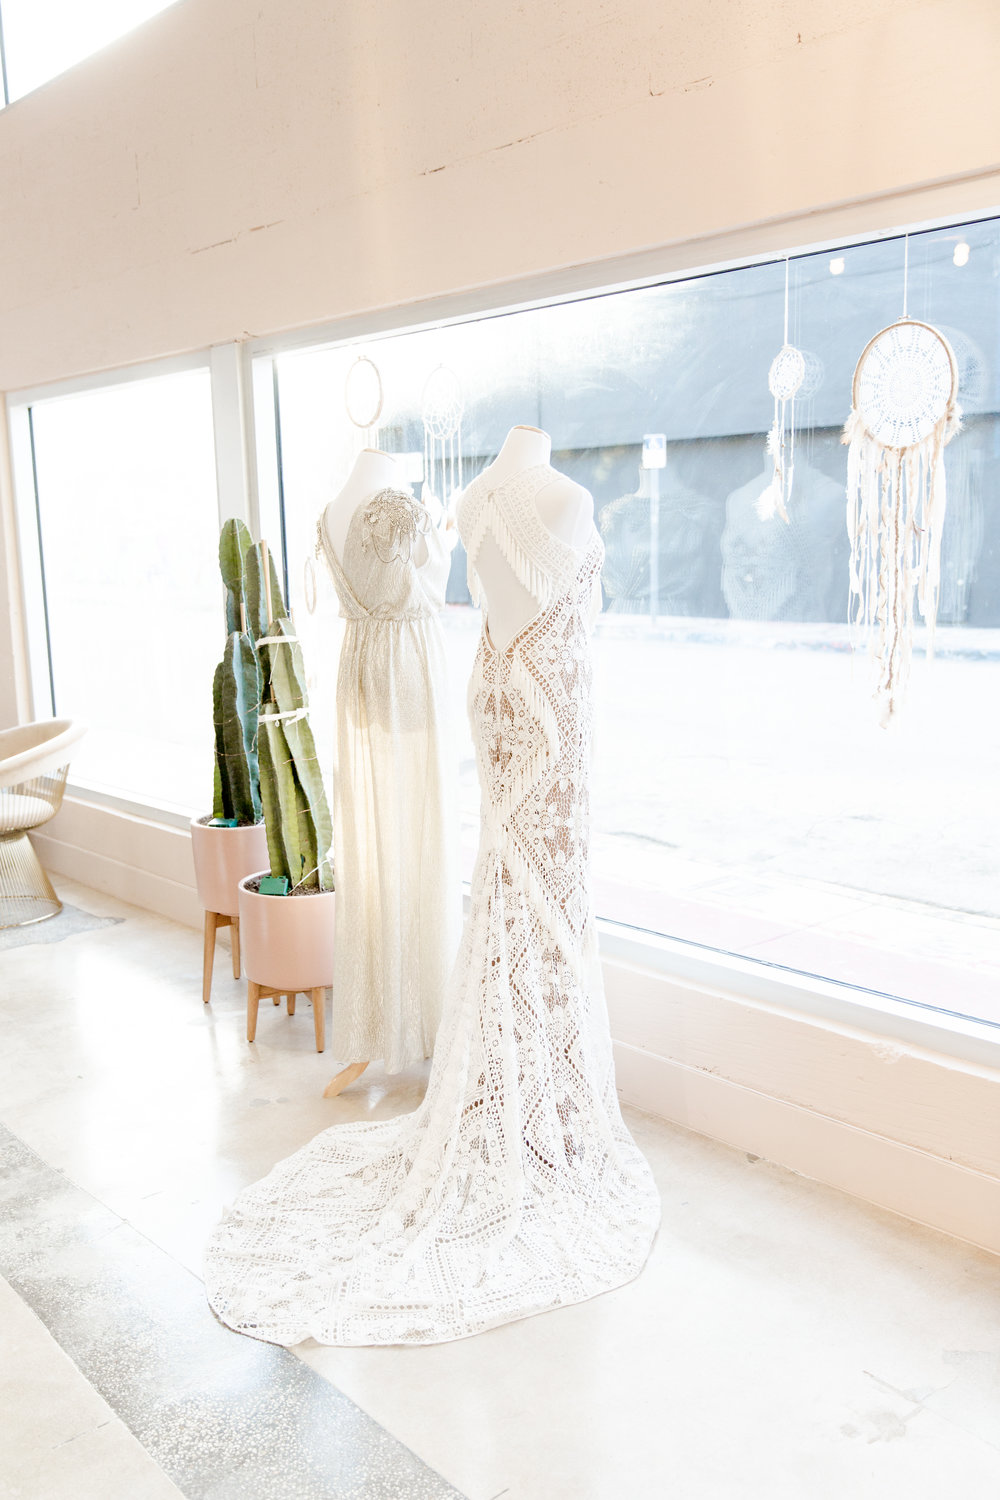 lovely BRIDE   - With locations all over the USA and a collection of designers to swoon over Lovely Bride is a must go for any bride to be. Their cozy,pink gilded and super stylish showrooms are sure to make you blush and with designers including Rue De Seine, Sarah Seven, Katie May, Limor Rosen andwith a splash of Odylyne the Ceremony magic we predict your changing room rail will be full of stunning gowns for you to enjoy and explore.